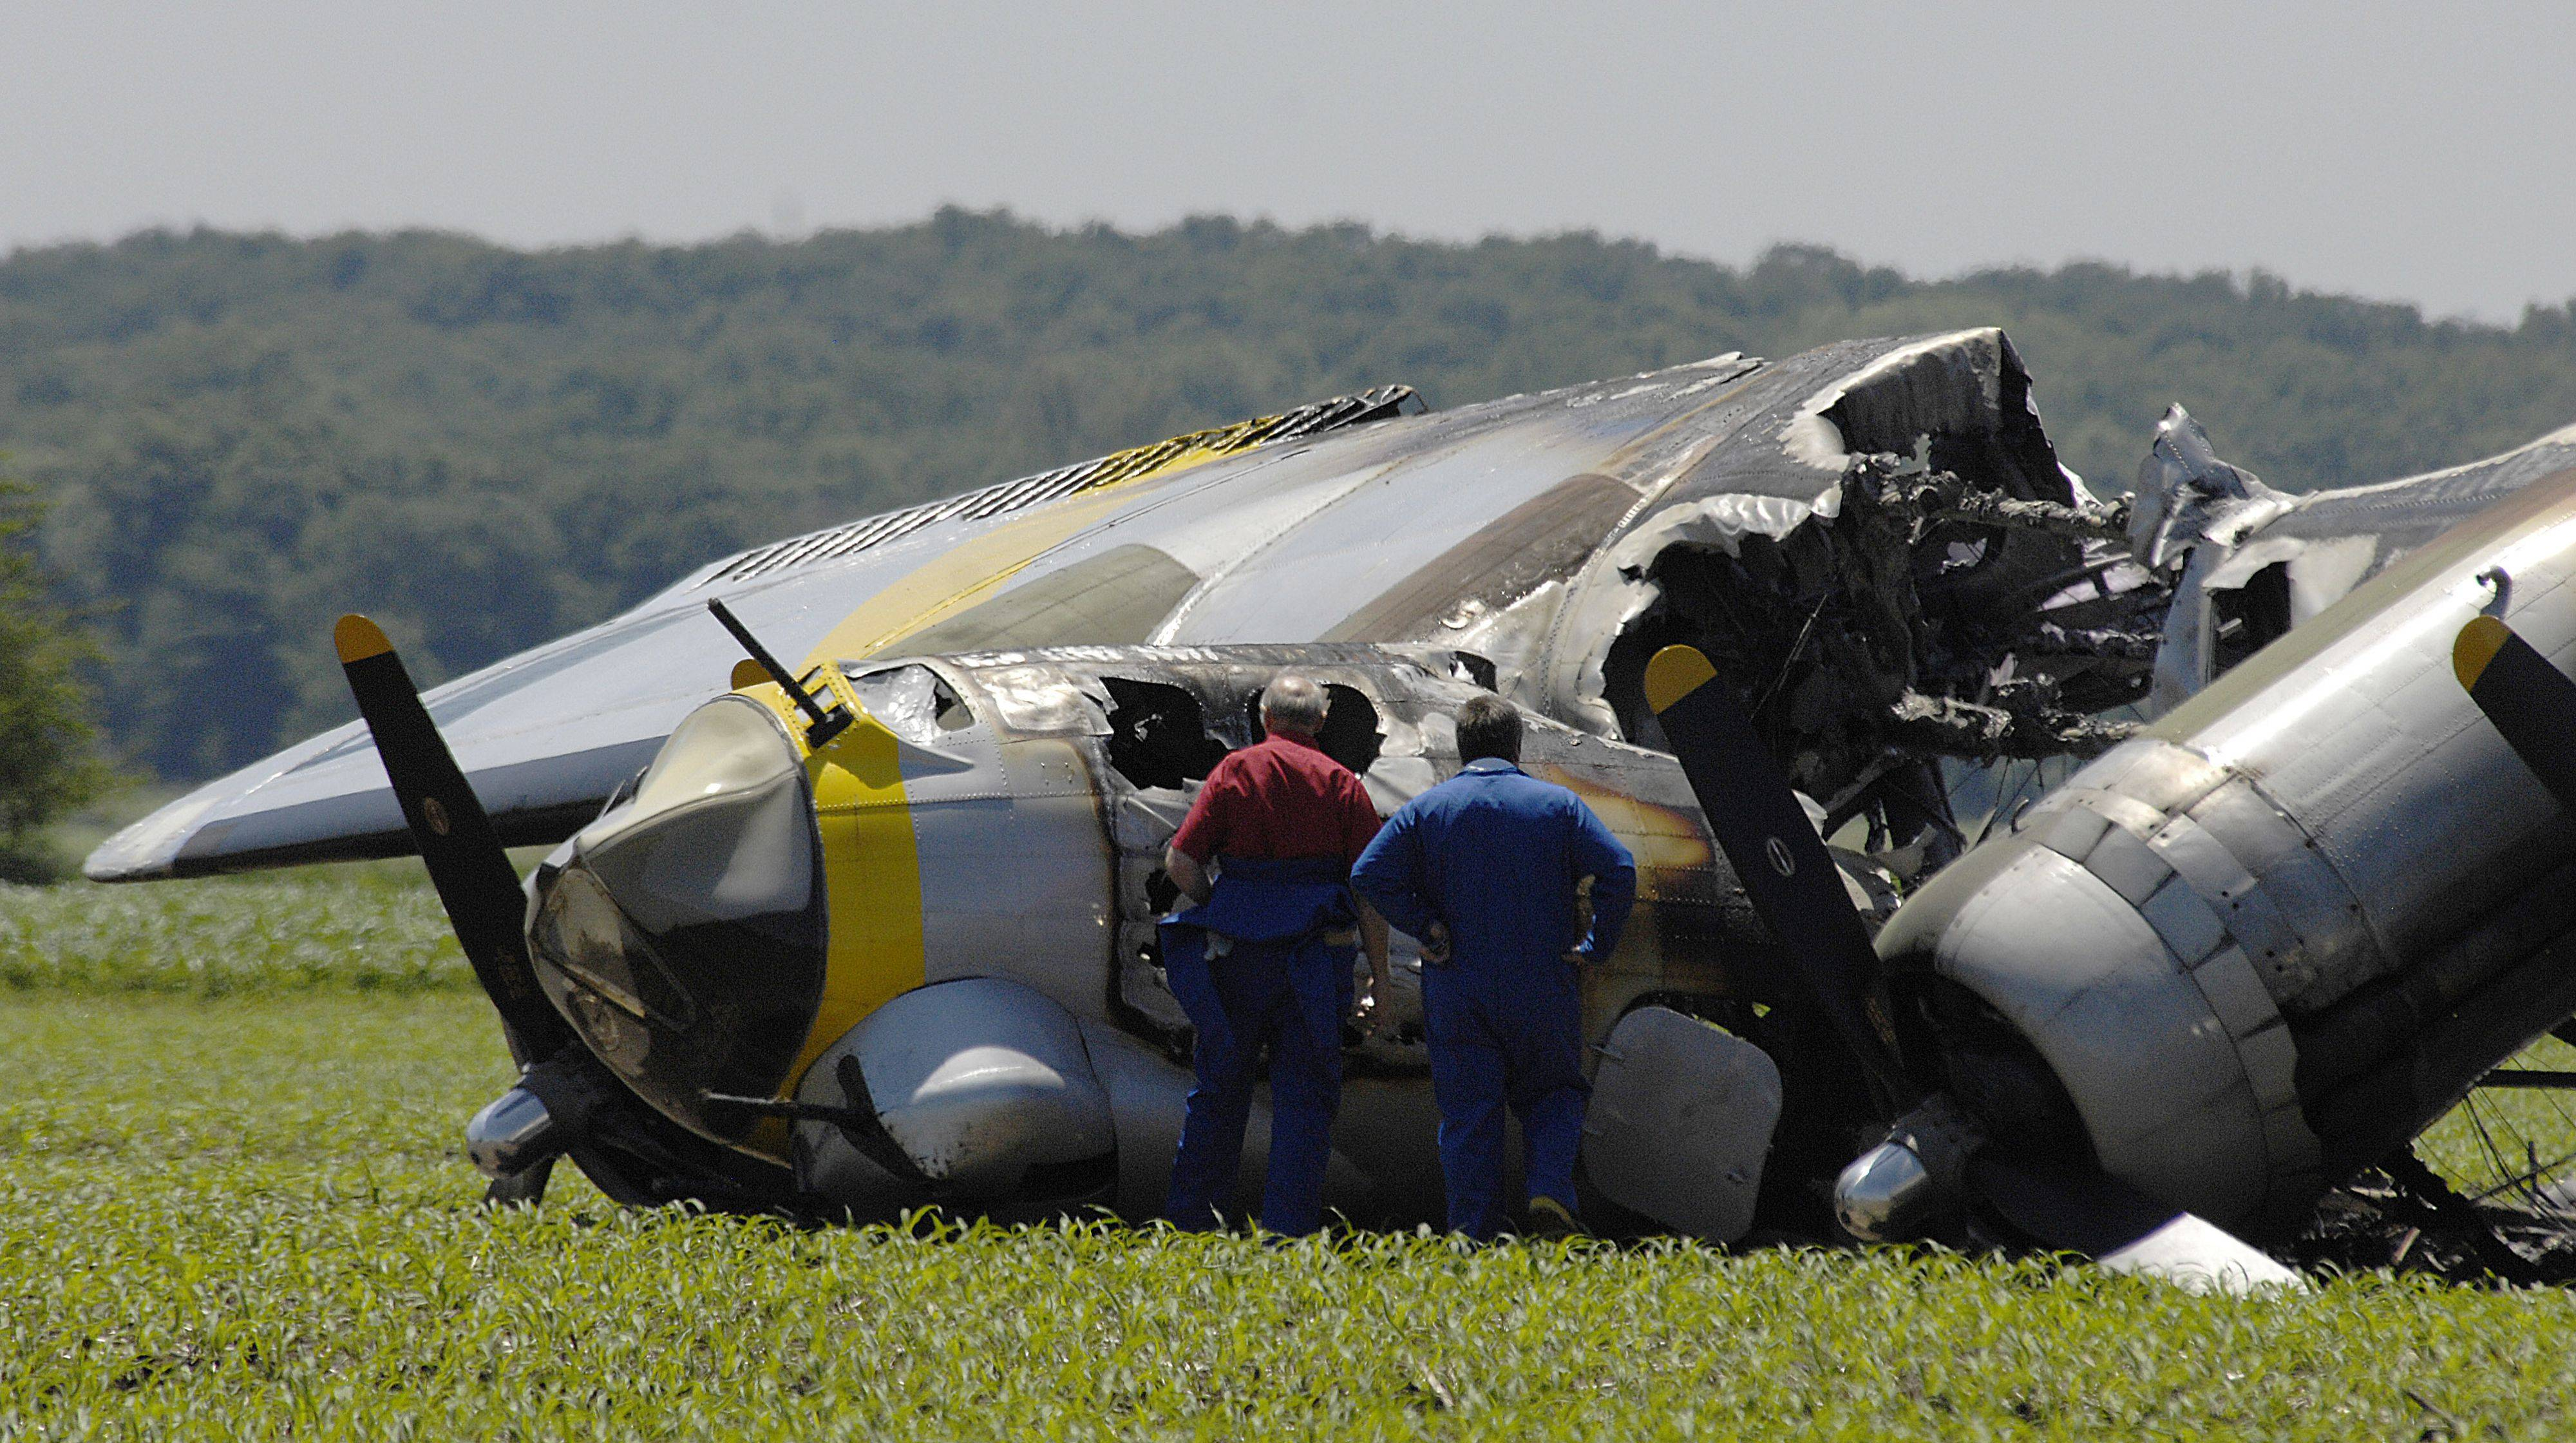 Investigators view the wreckage of the vintage B-17 airplane that made an emergency landing in a cornfield near Oswego.